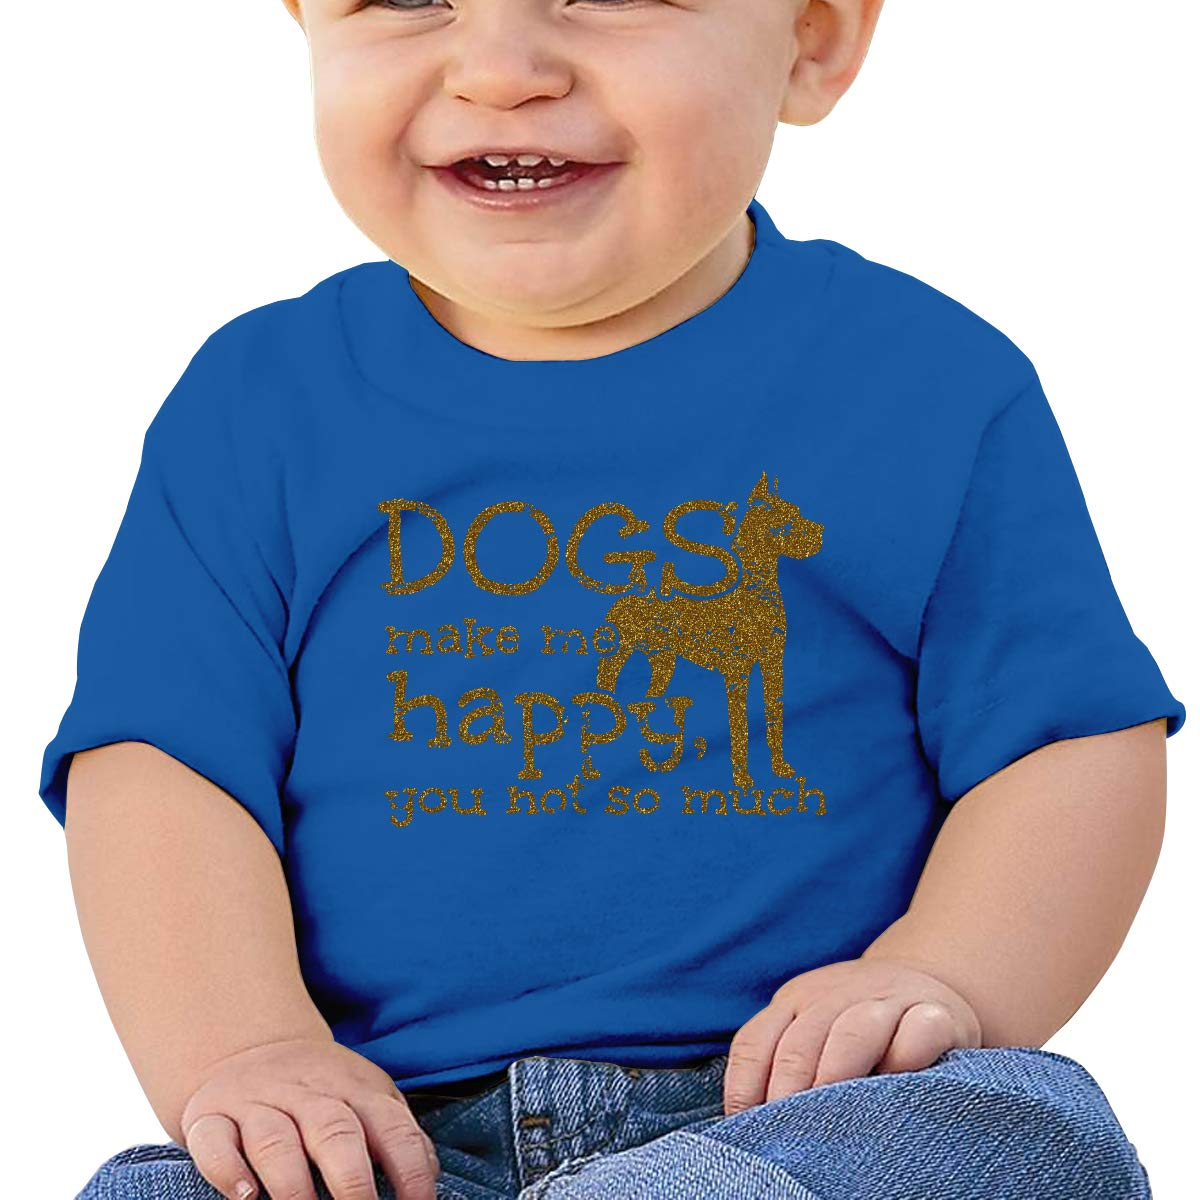 XHX403 Dogs Make Me Happy Infant Kids T Shirt Cotton Tee Toddler Baby 6-18M